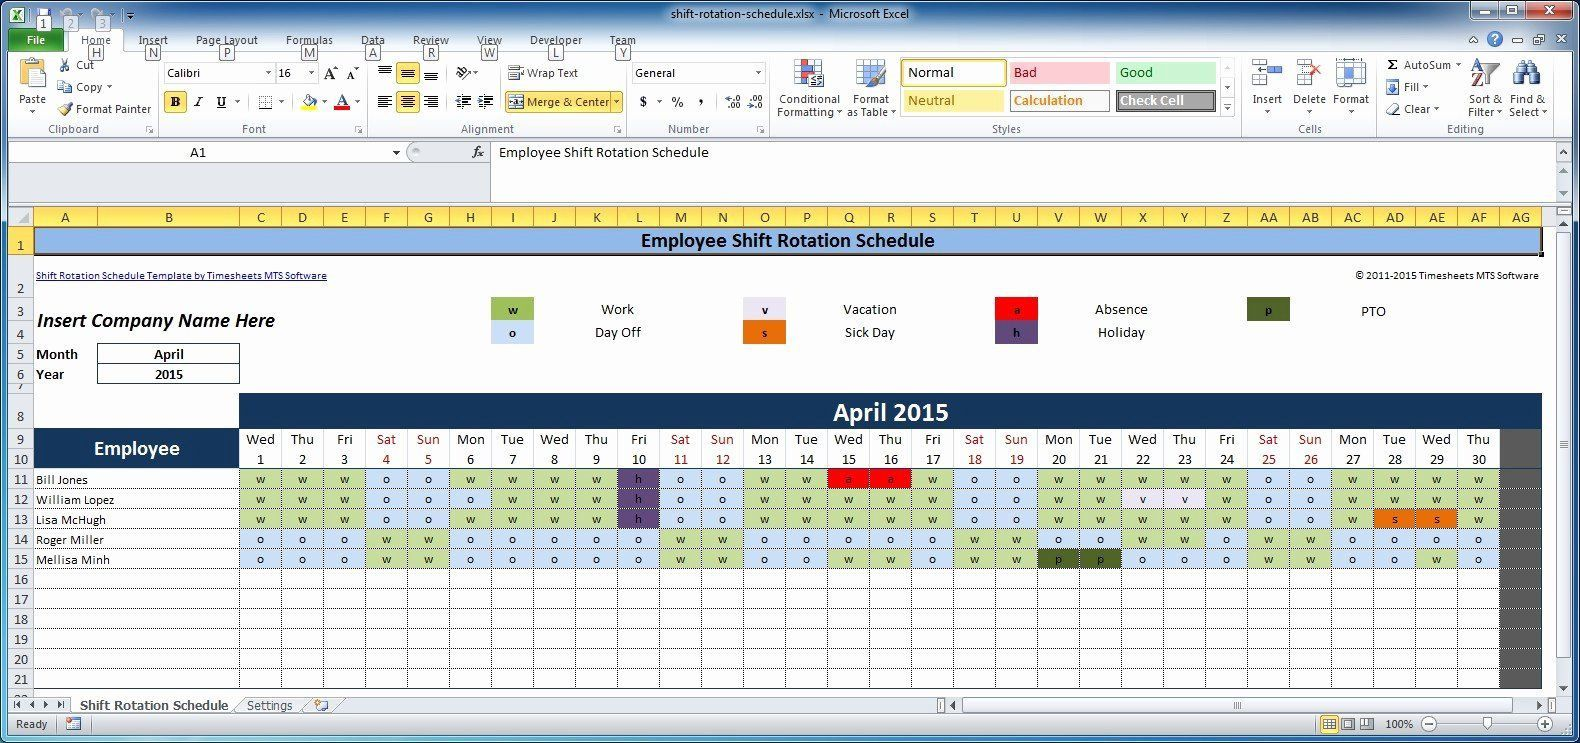 008 Shocking Excel Work Schedule Template Concept  Microsoft Plan Yearly ShiftFull